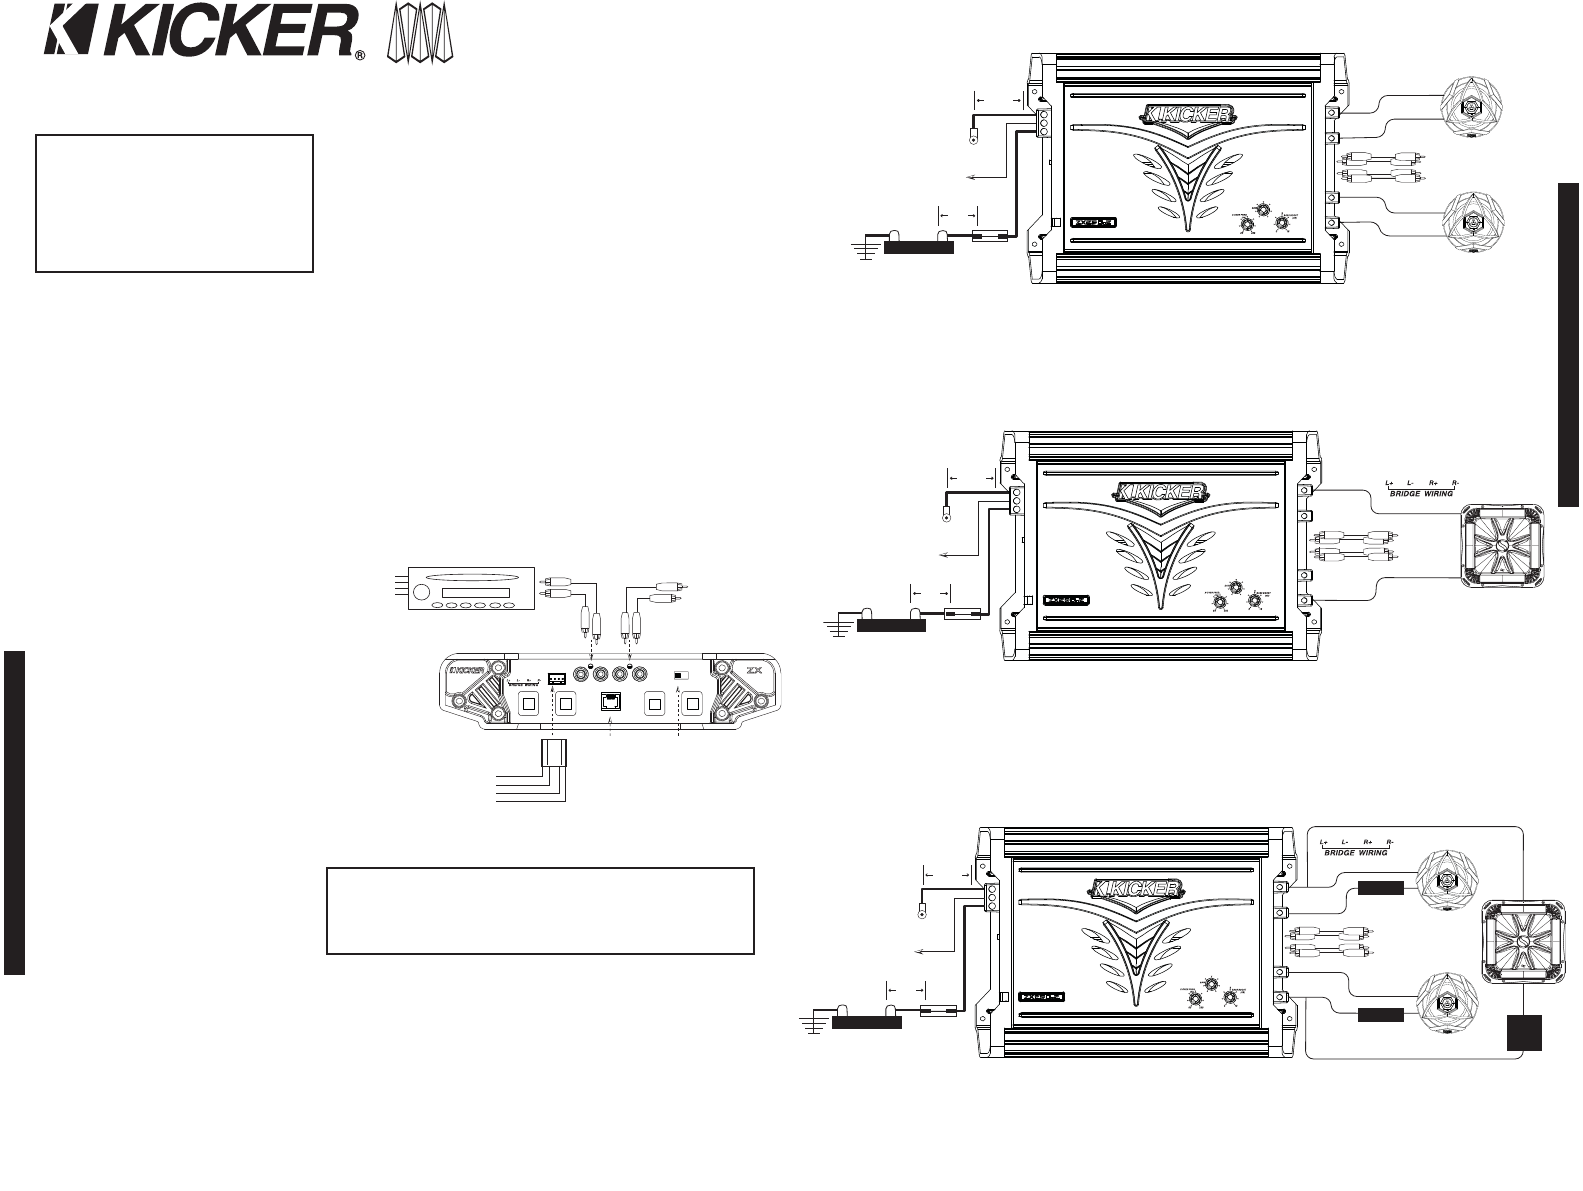 kicker cvr wiring diagram   25 wiring diagram images